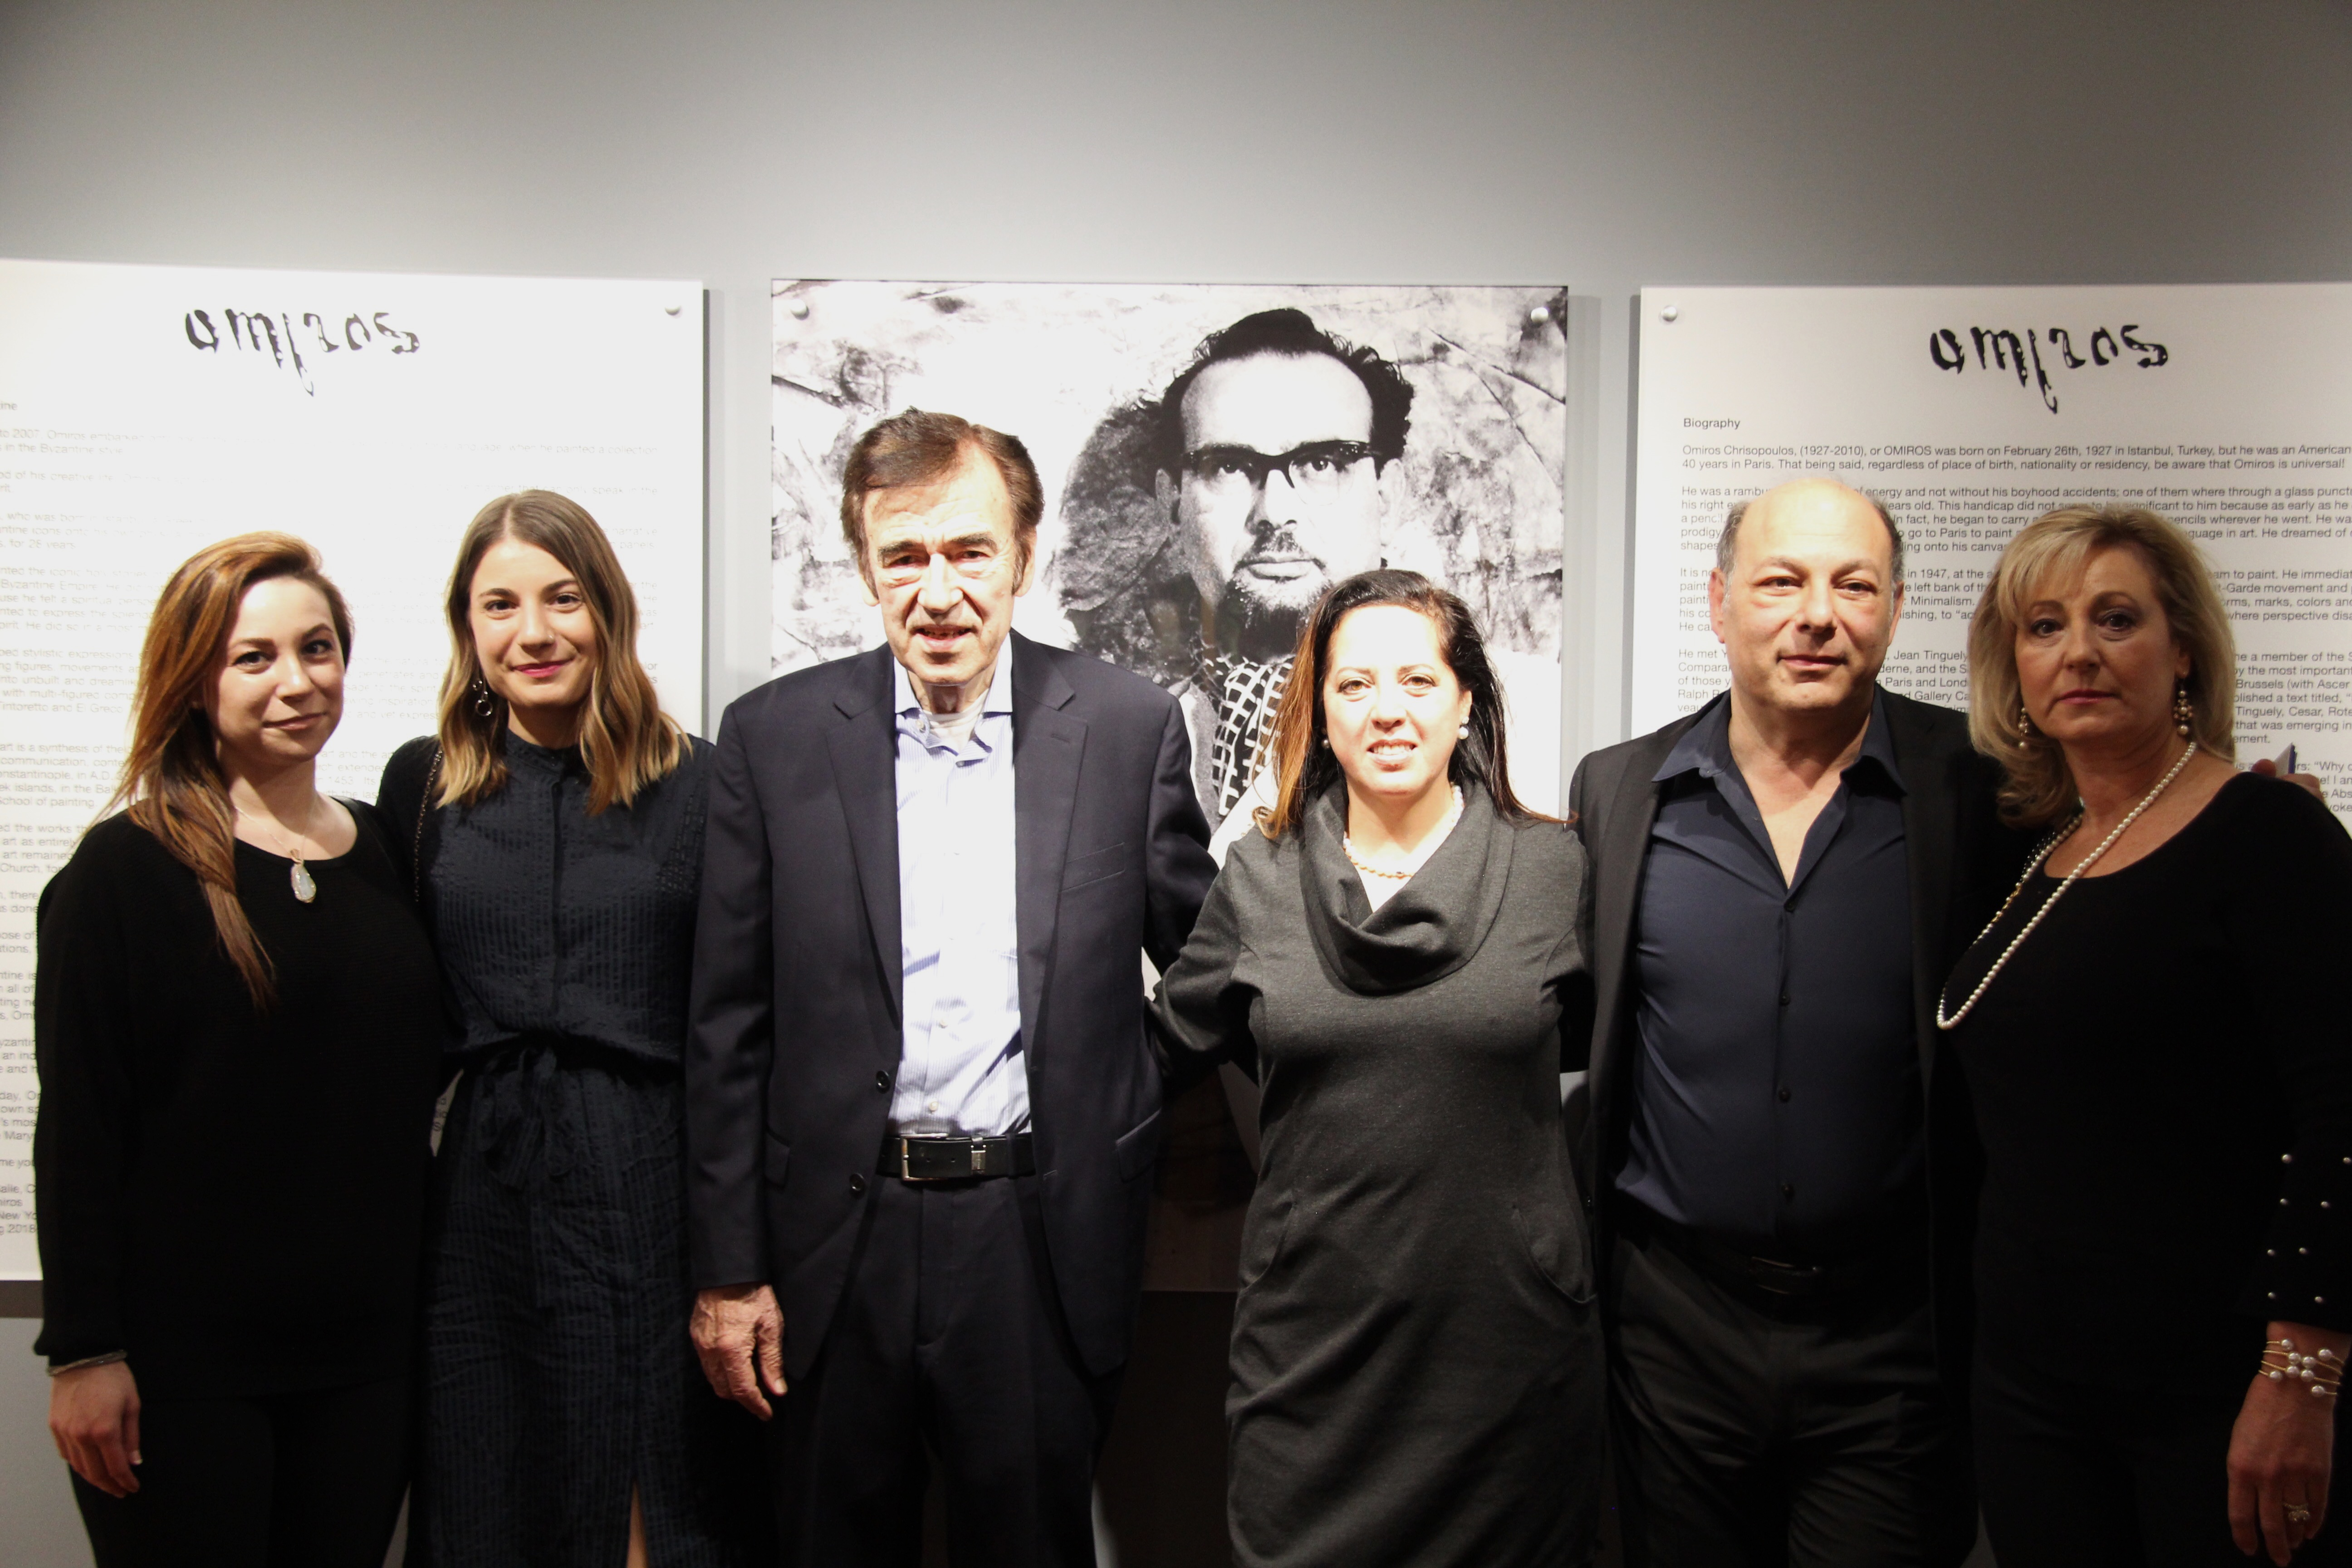 Saile Family. Atelier Omiros Inaugural Opening